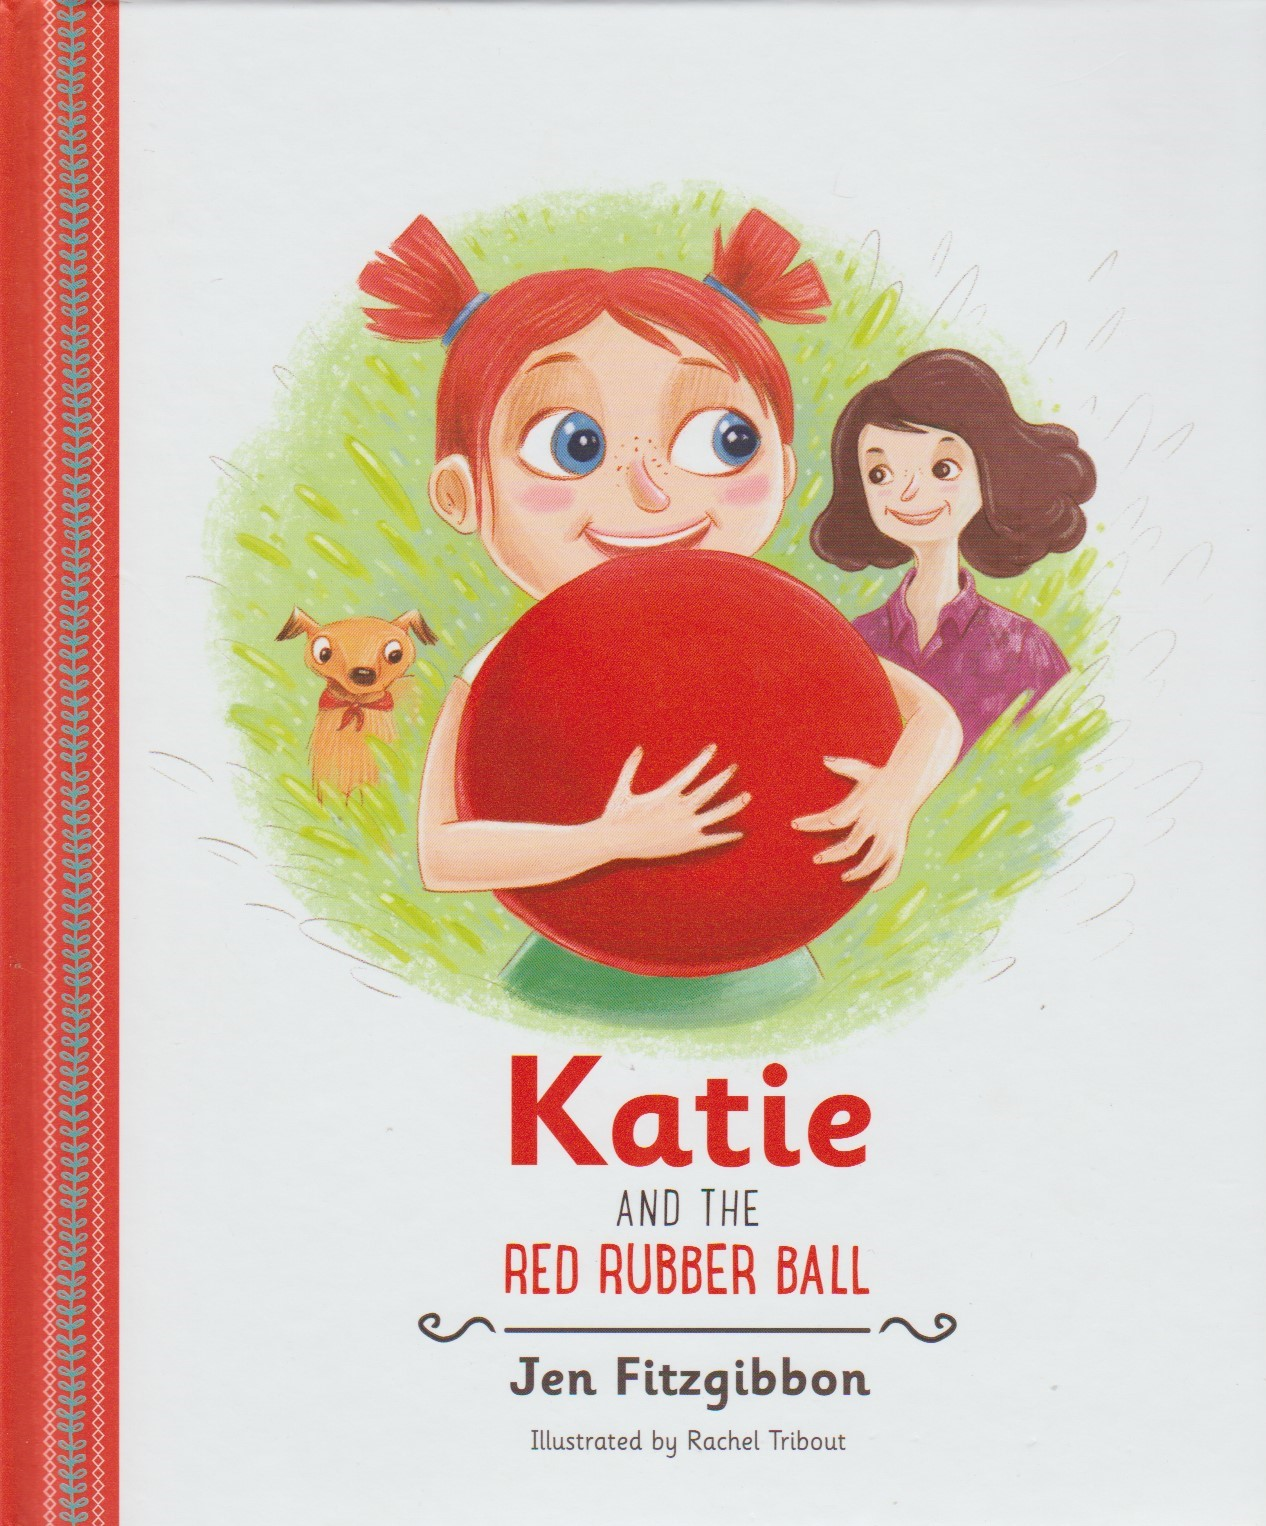 Katie and the Red Rubber Ball